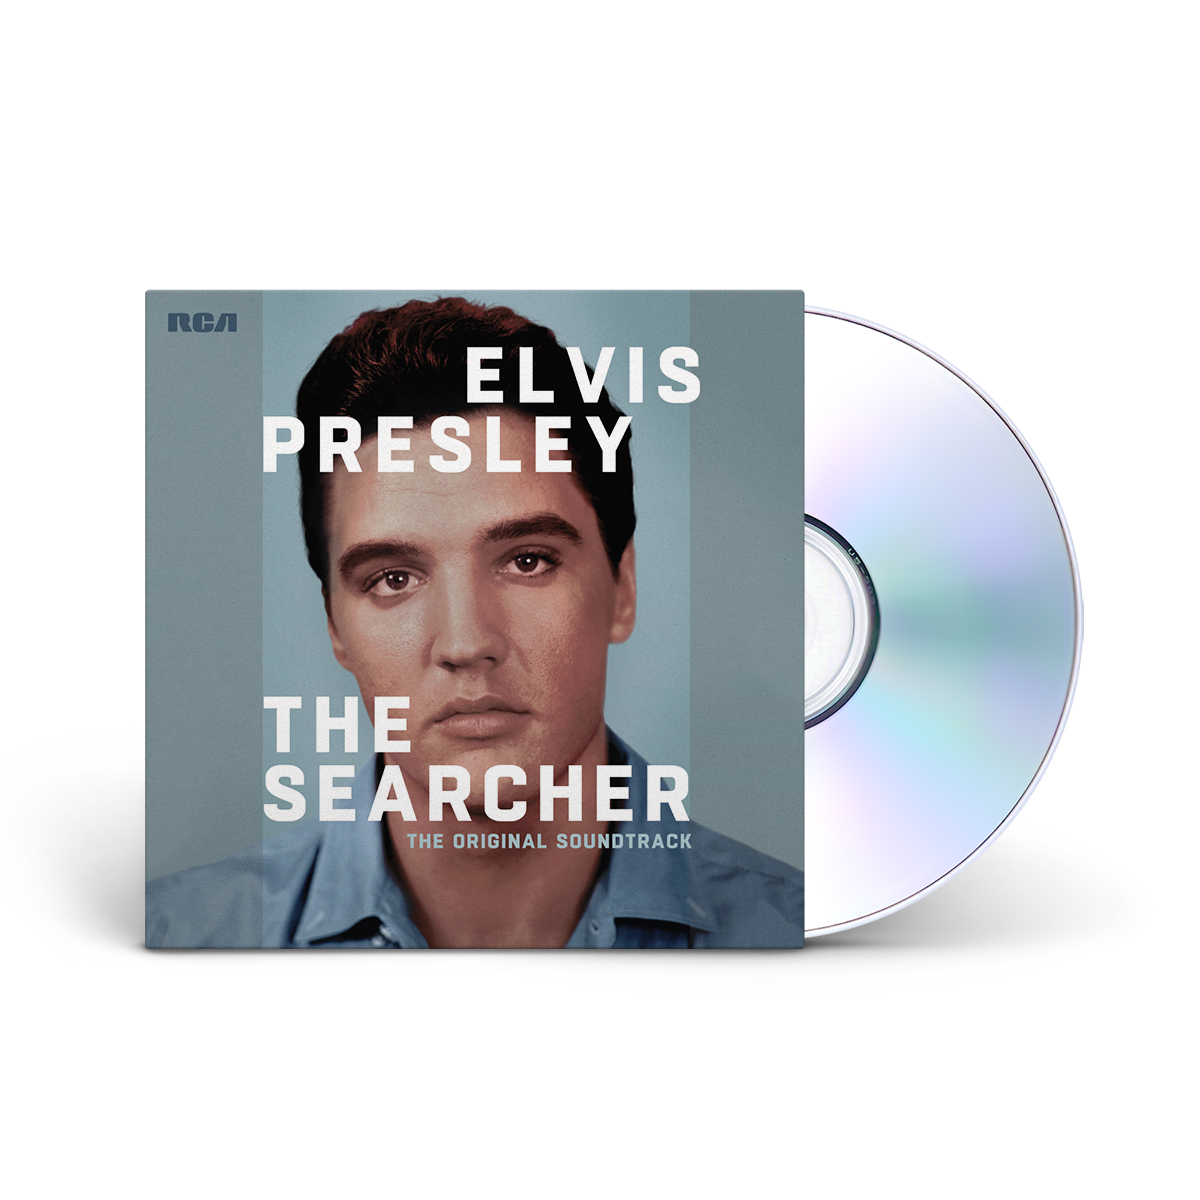 Elvis Presley: The Searcher (The Original Soundtrack) CD